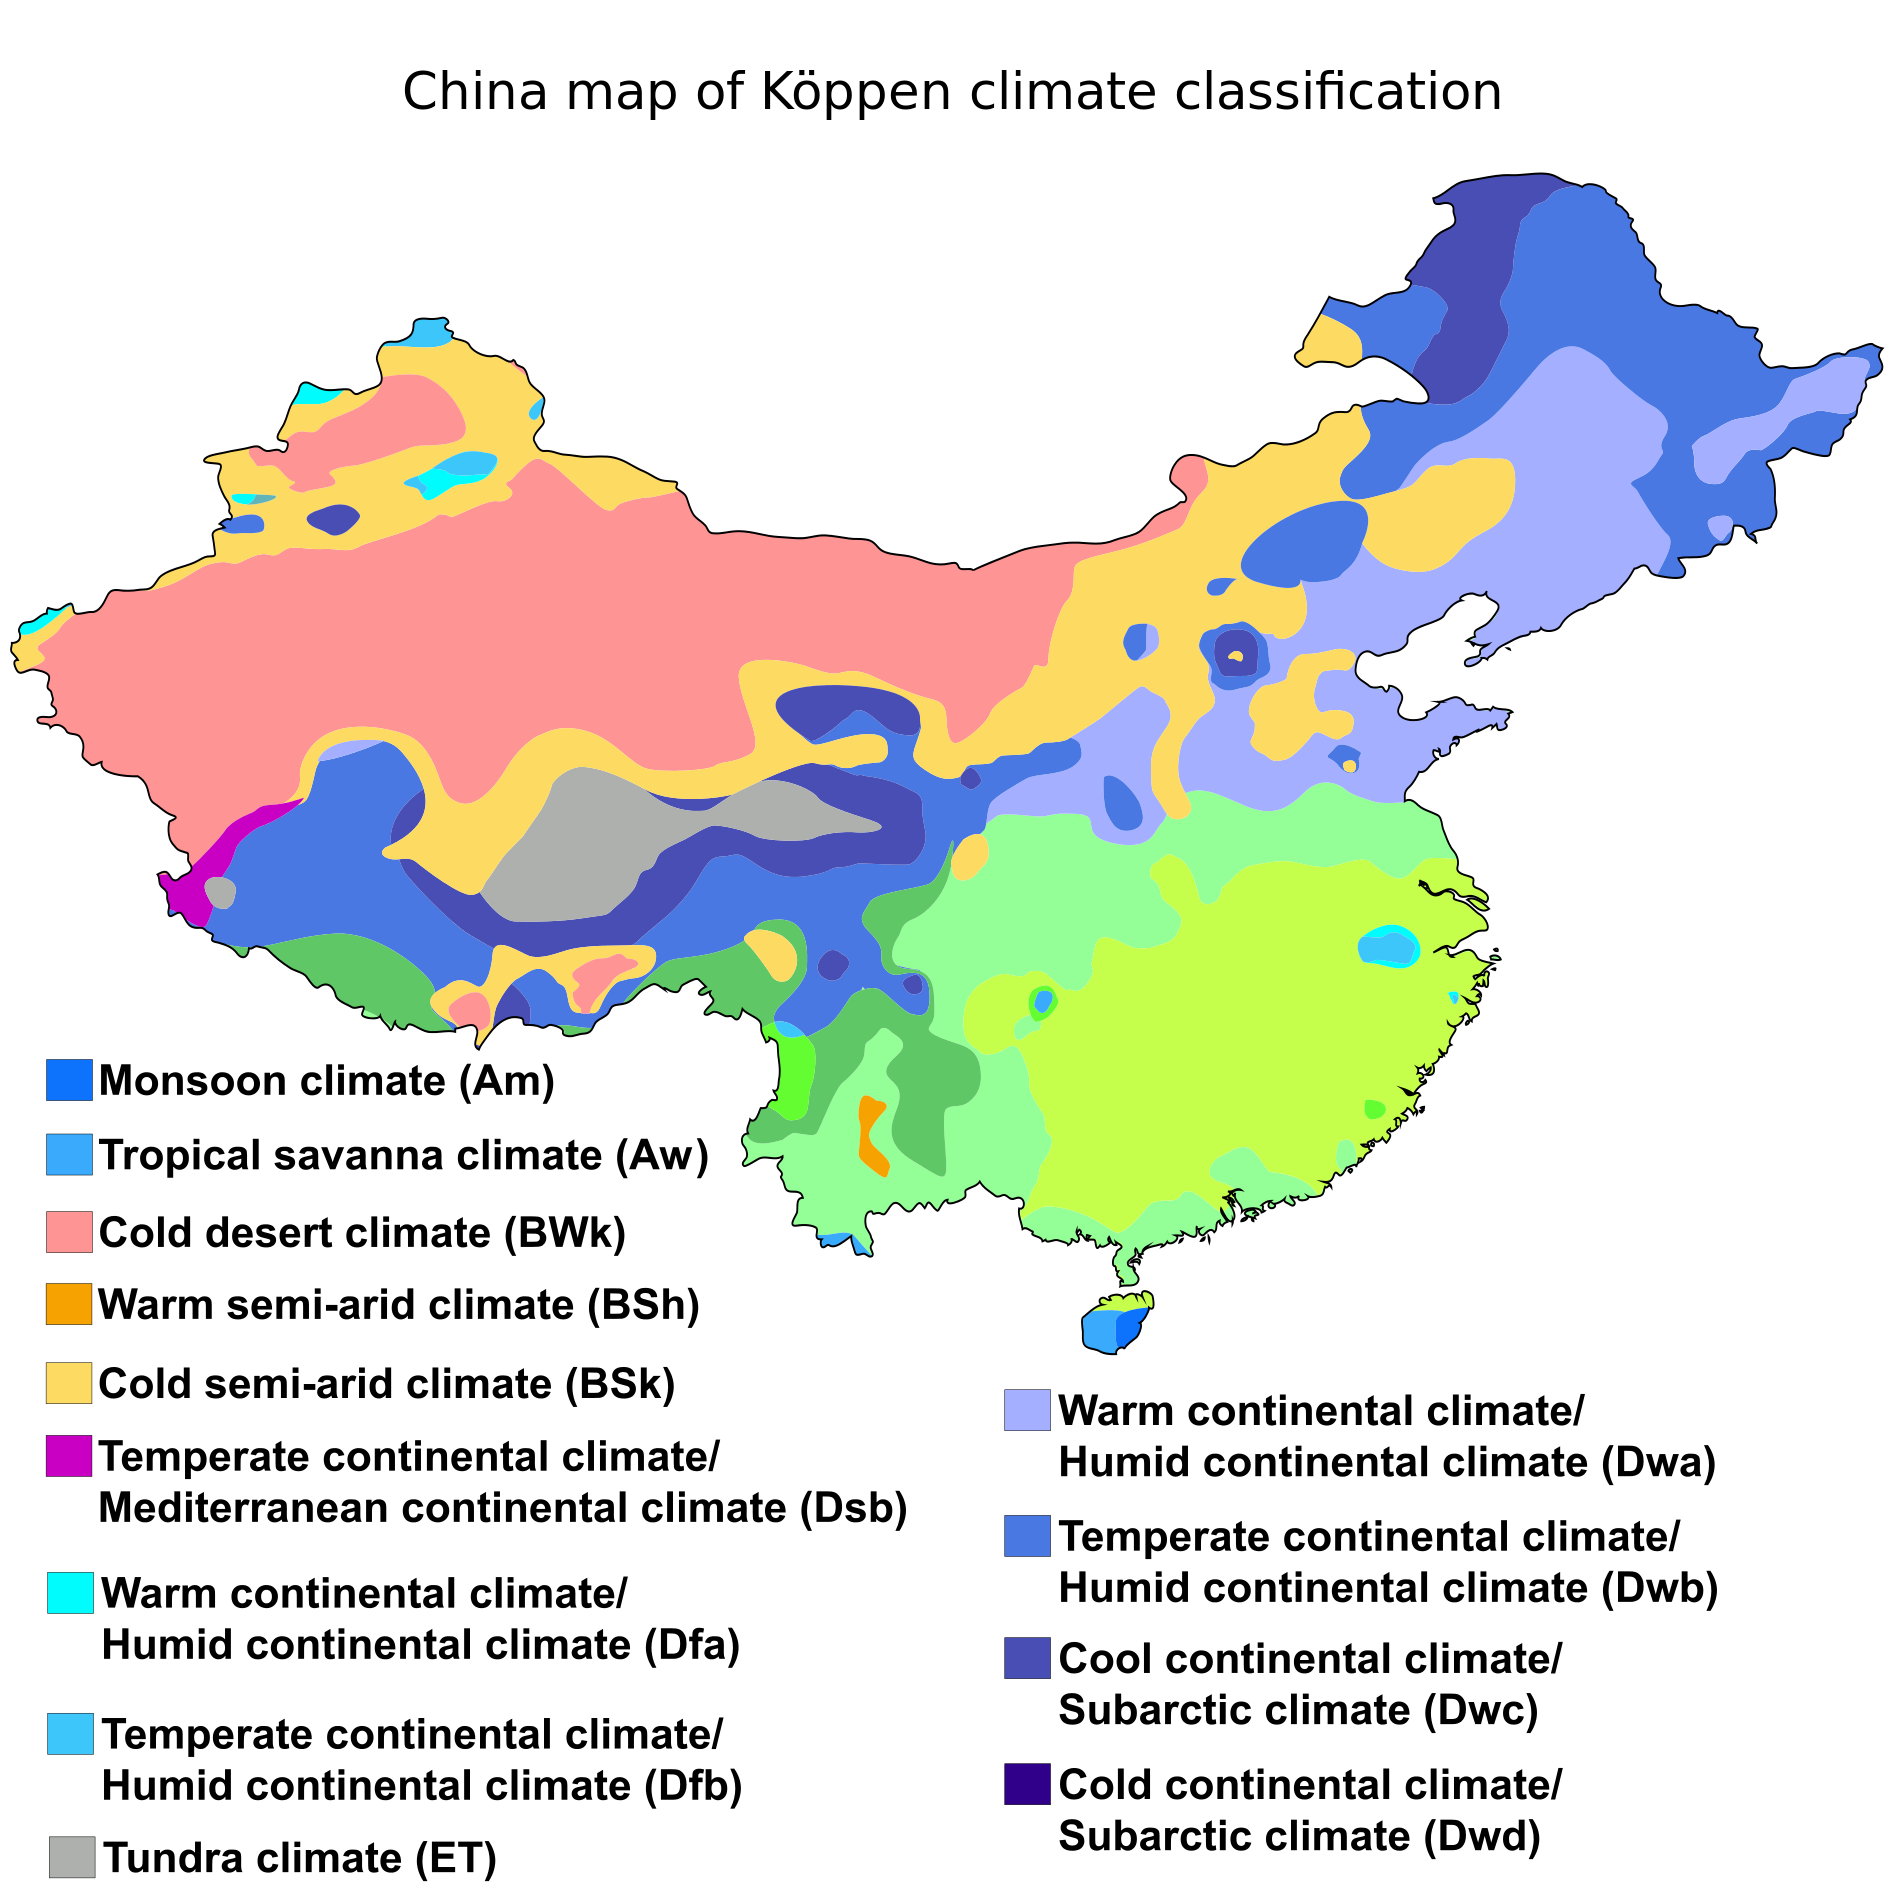 Koppen Climate Classification Map Of China